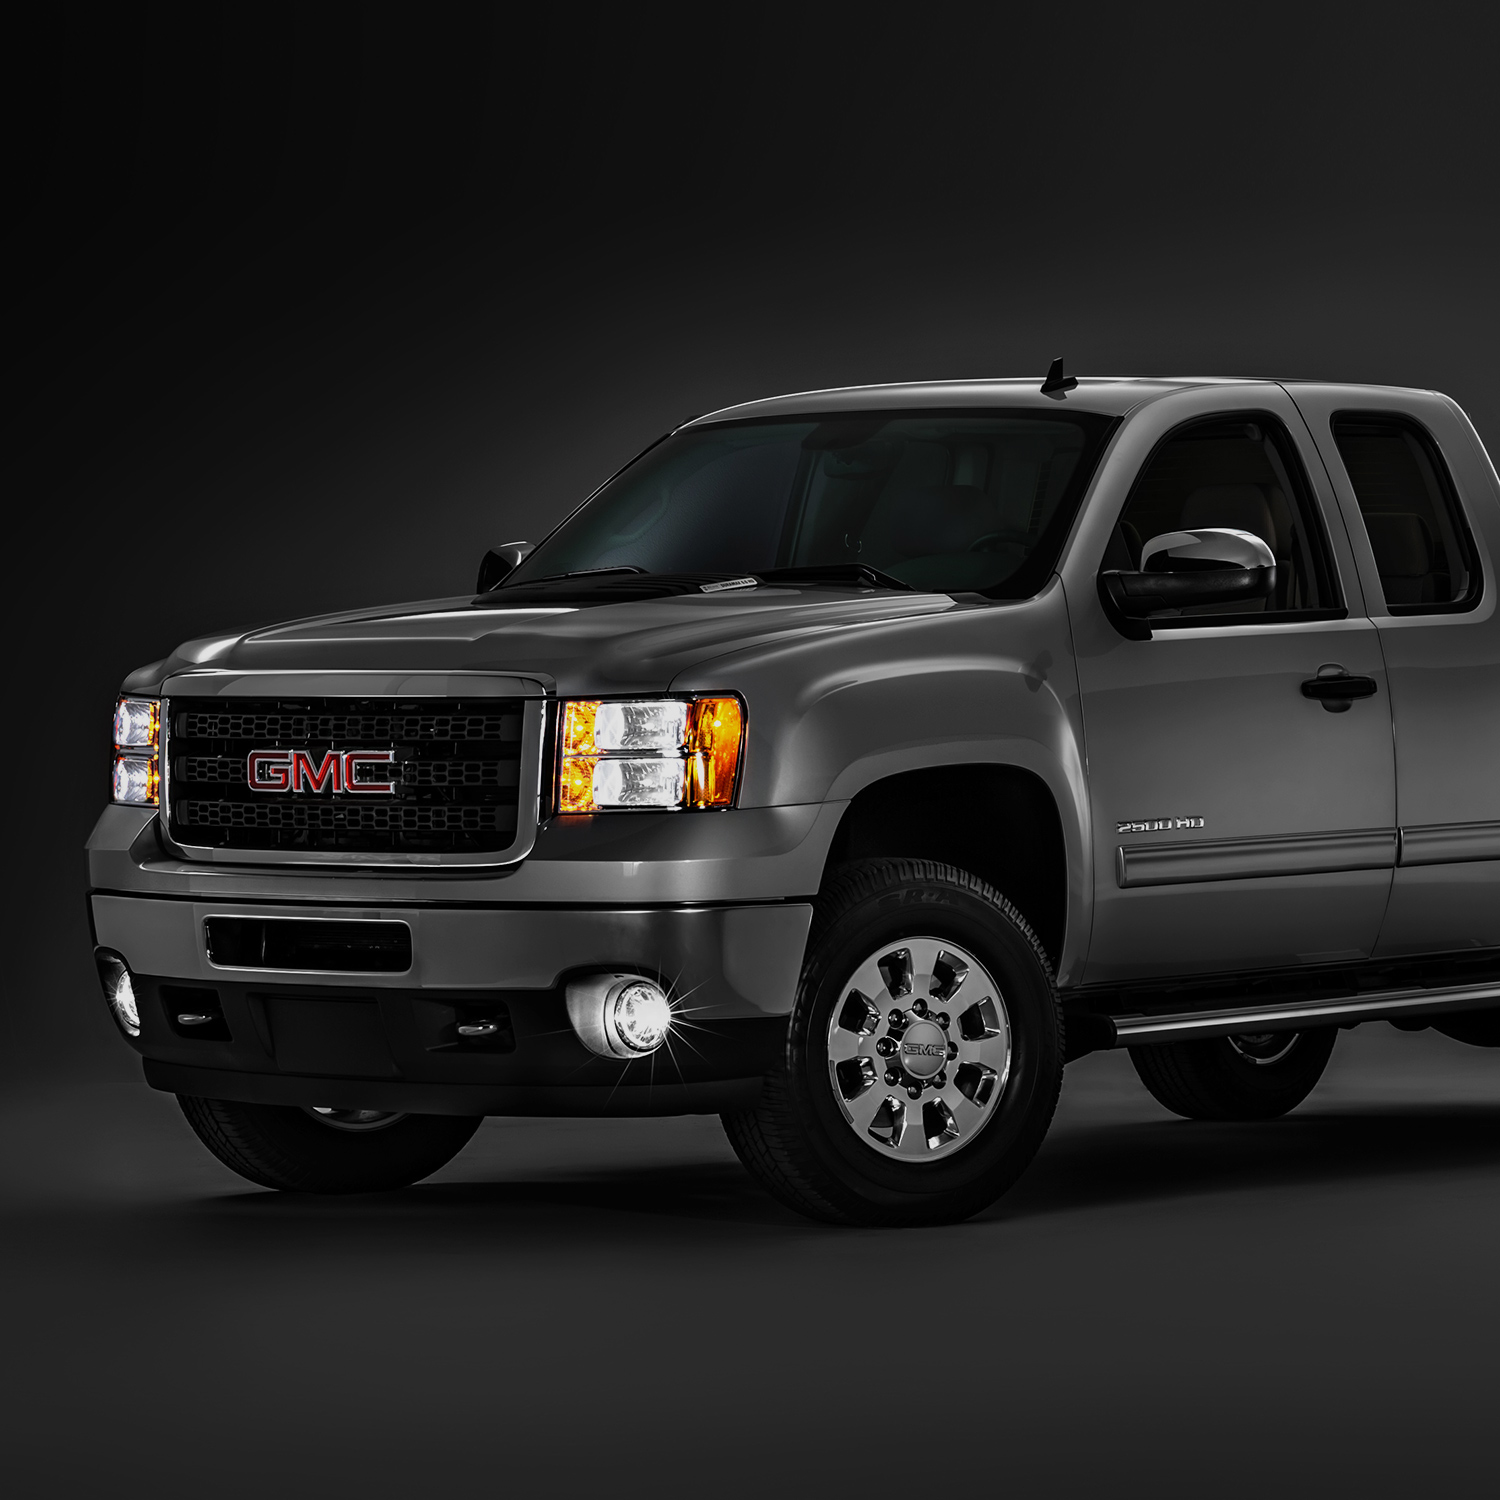 commercial automotive photography in metro detroit